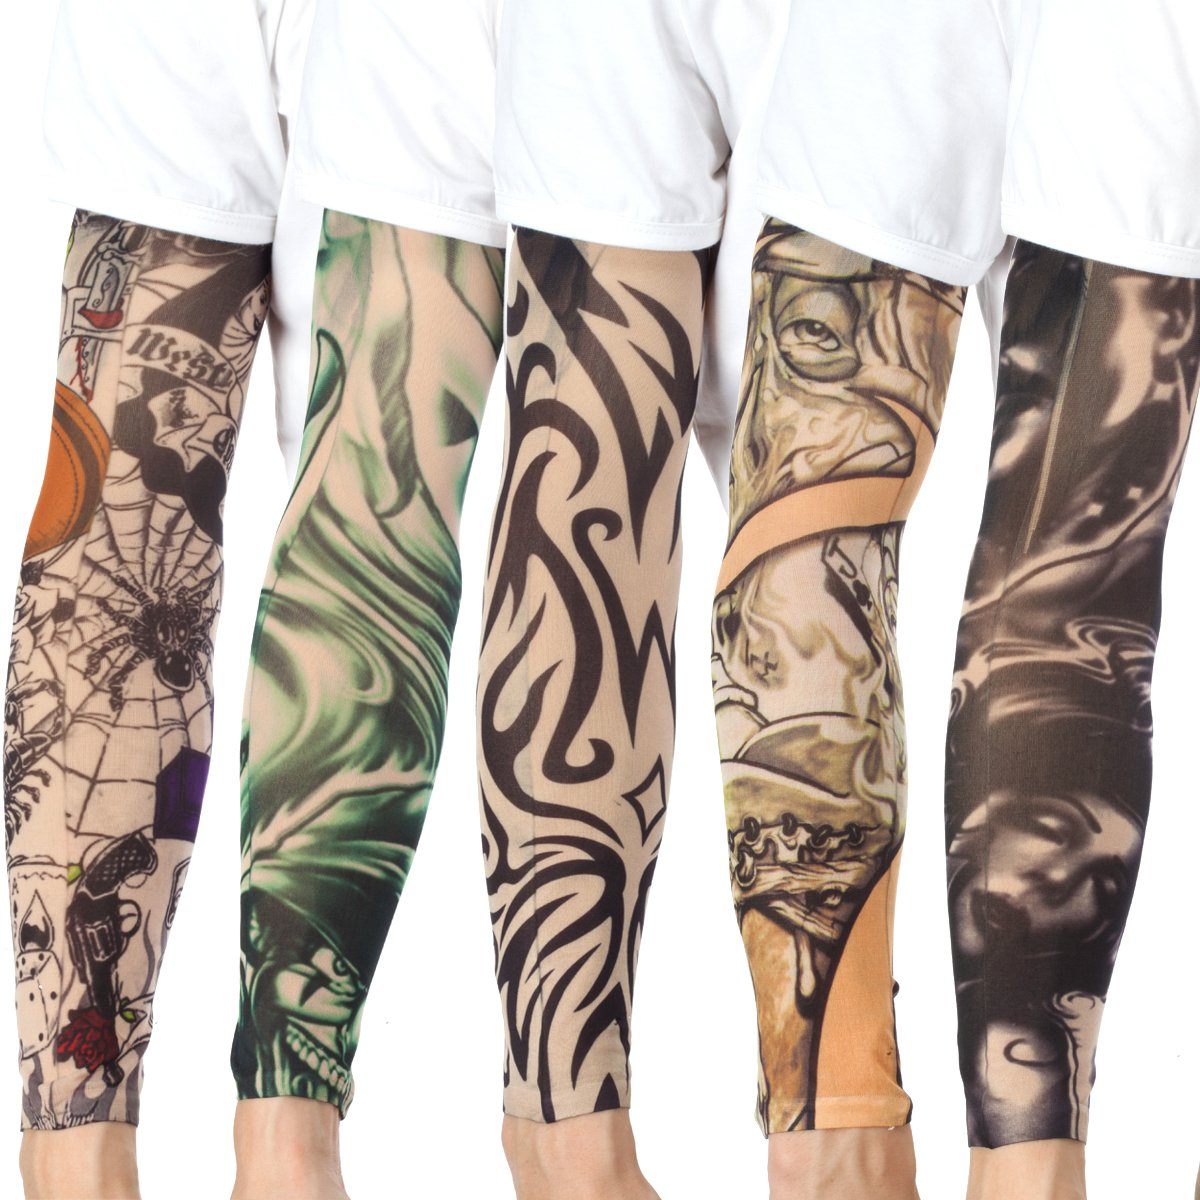 20PCS Set Arts Fake Temporary Tattoo Arm Sunscreen Sleeves - AKStore - Designs Tiger, Crown Heart, Skull, Tribal and Etc by Akstore (Image #5)